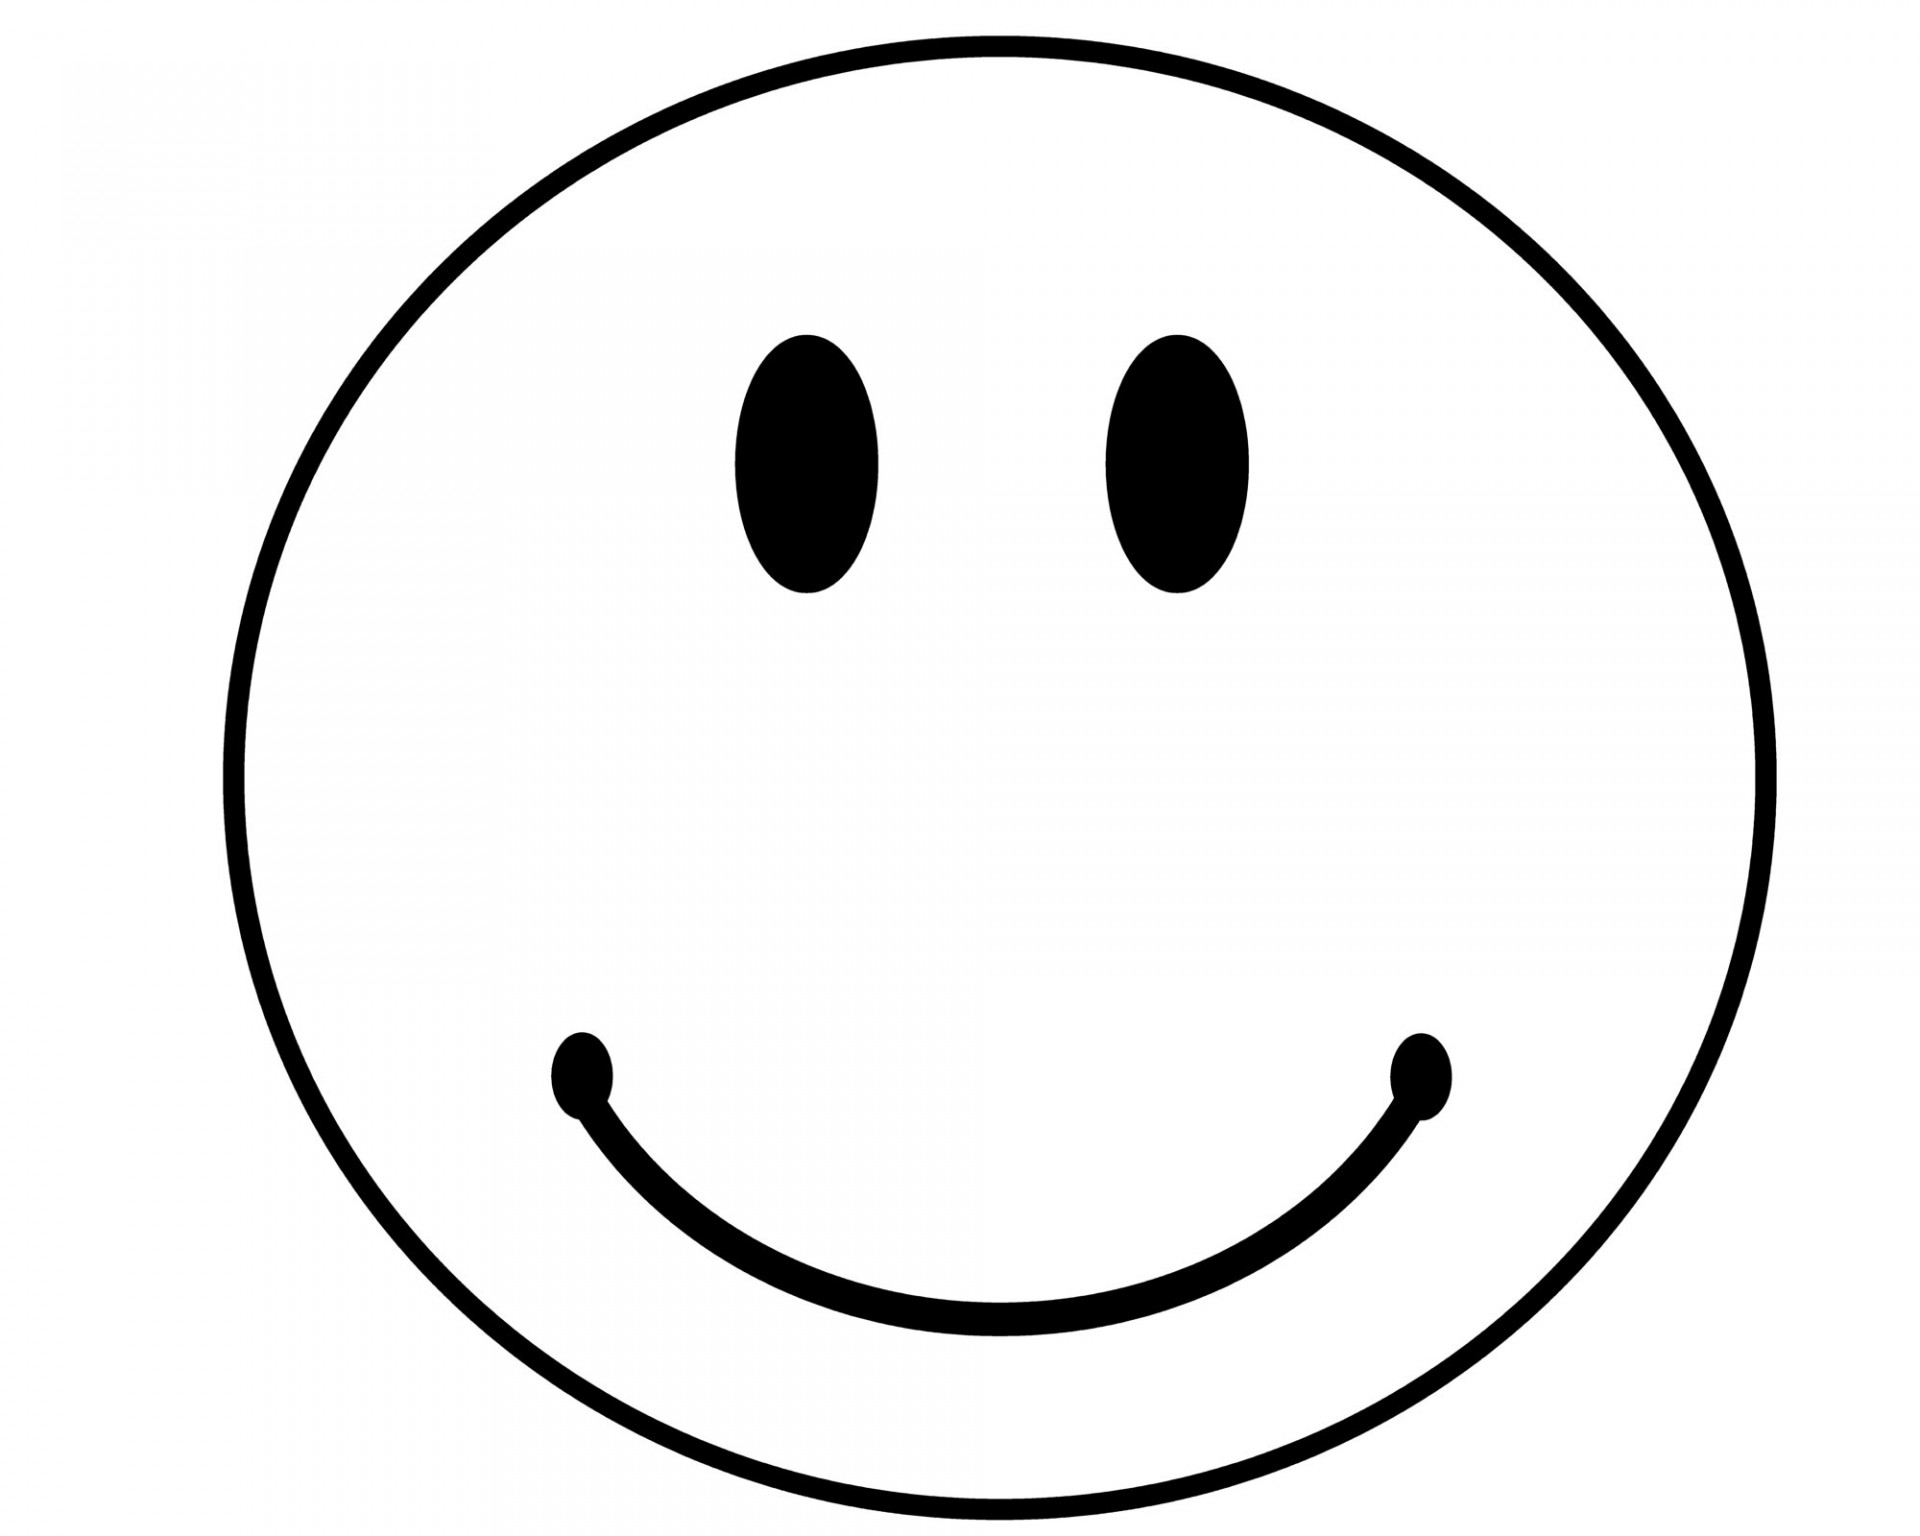 Free stock photo public. Smiley face clip art